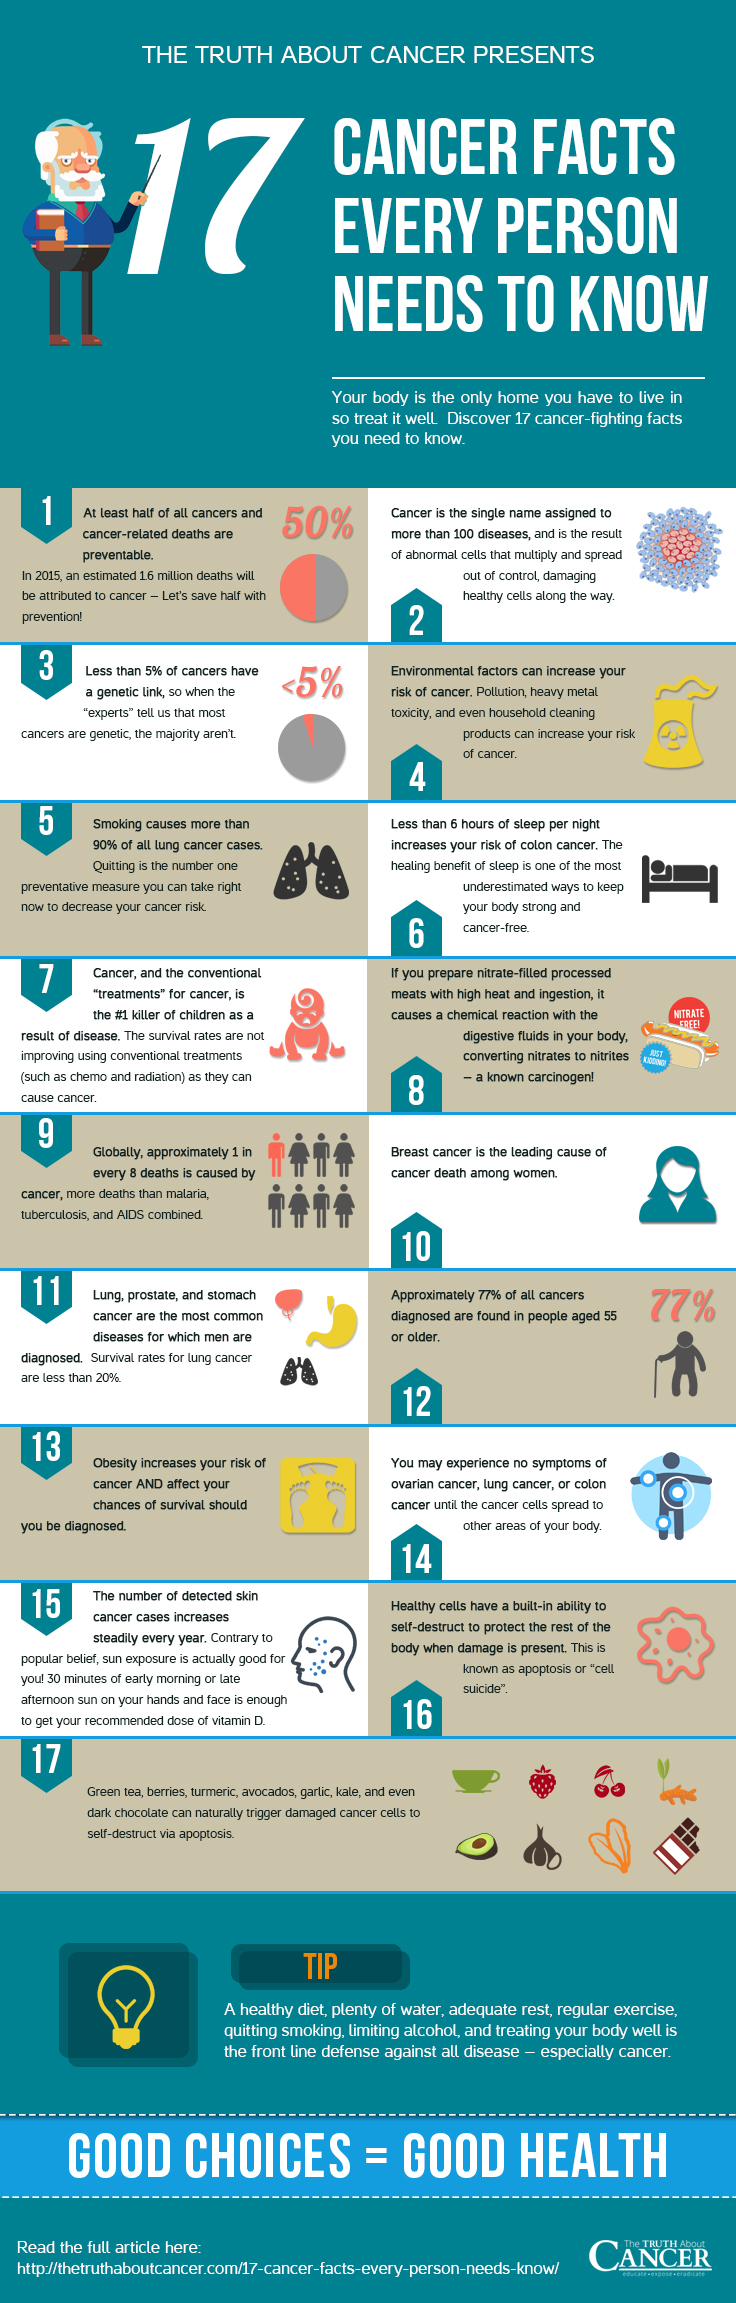 17-Cancer-Facts-infographic